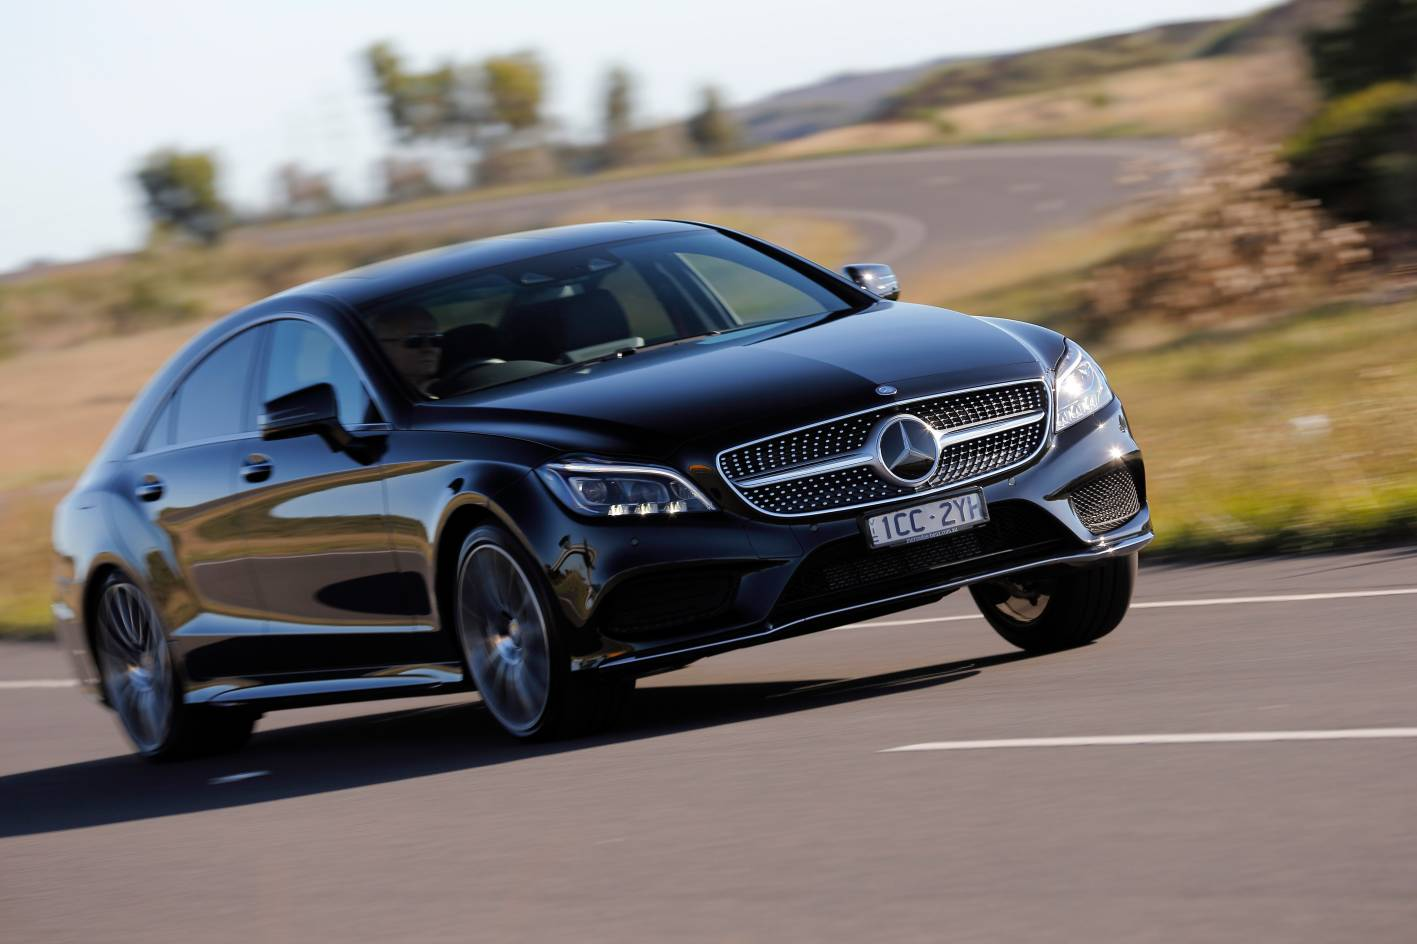 News 2015 mercedes benz cls price and specs for Mercedes benz 550 cls 2015 price